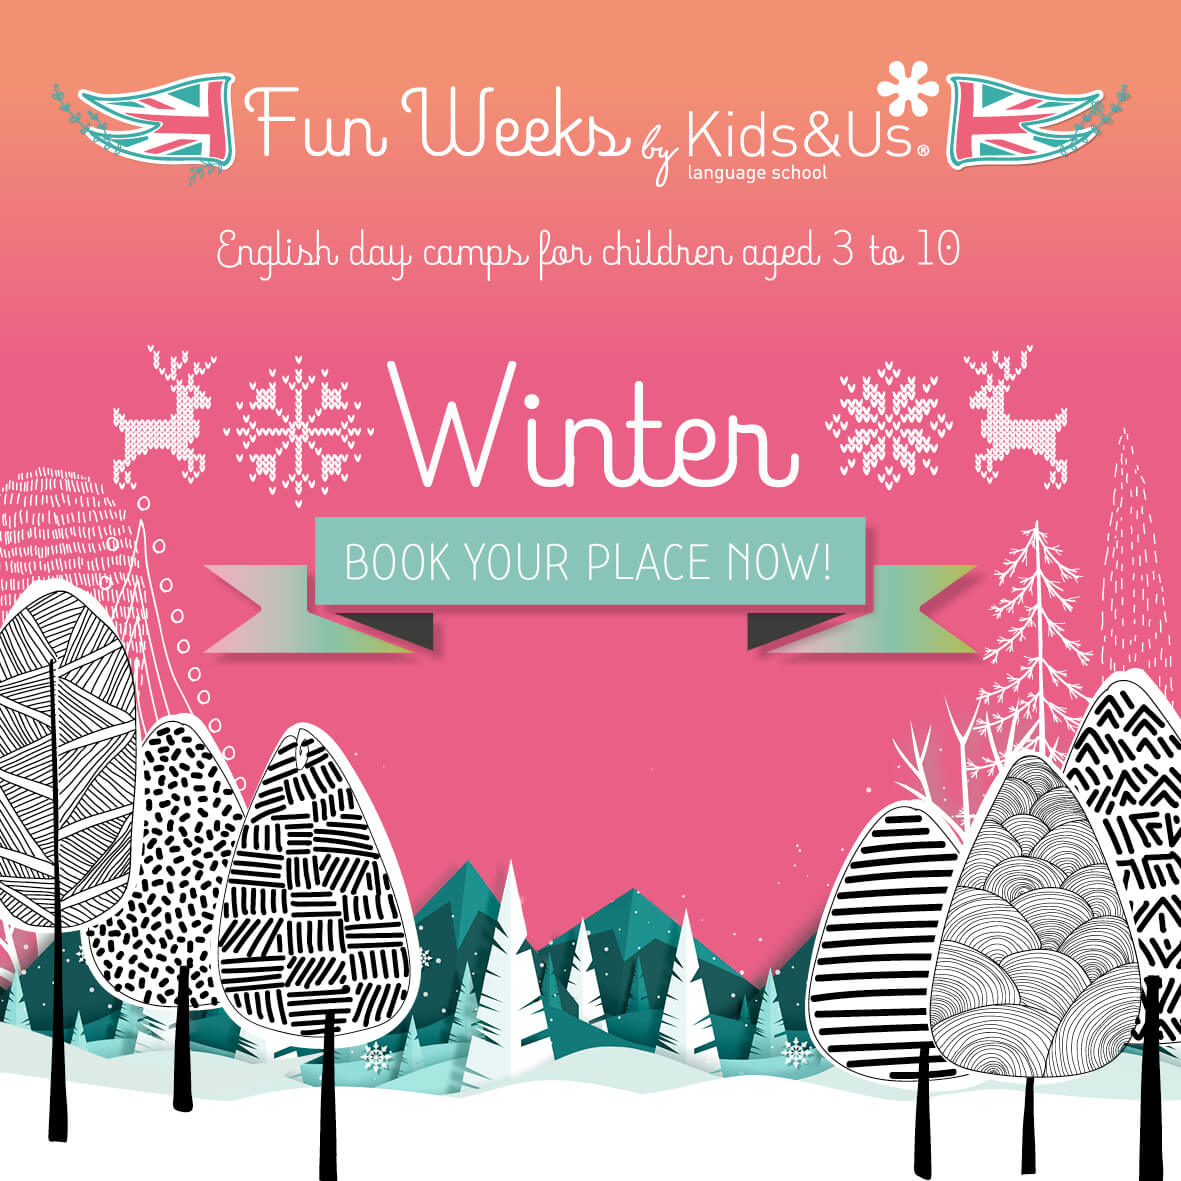 Kids&Us schools open enrolment for the winter English day camps